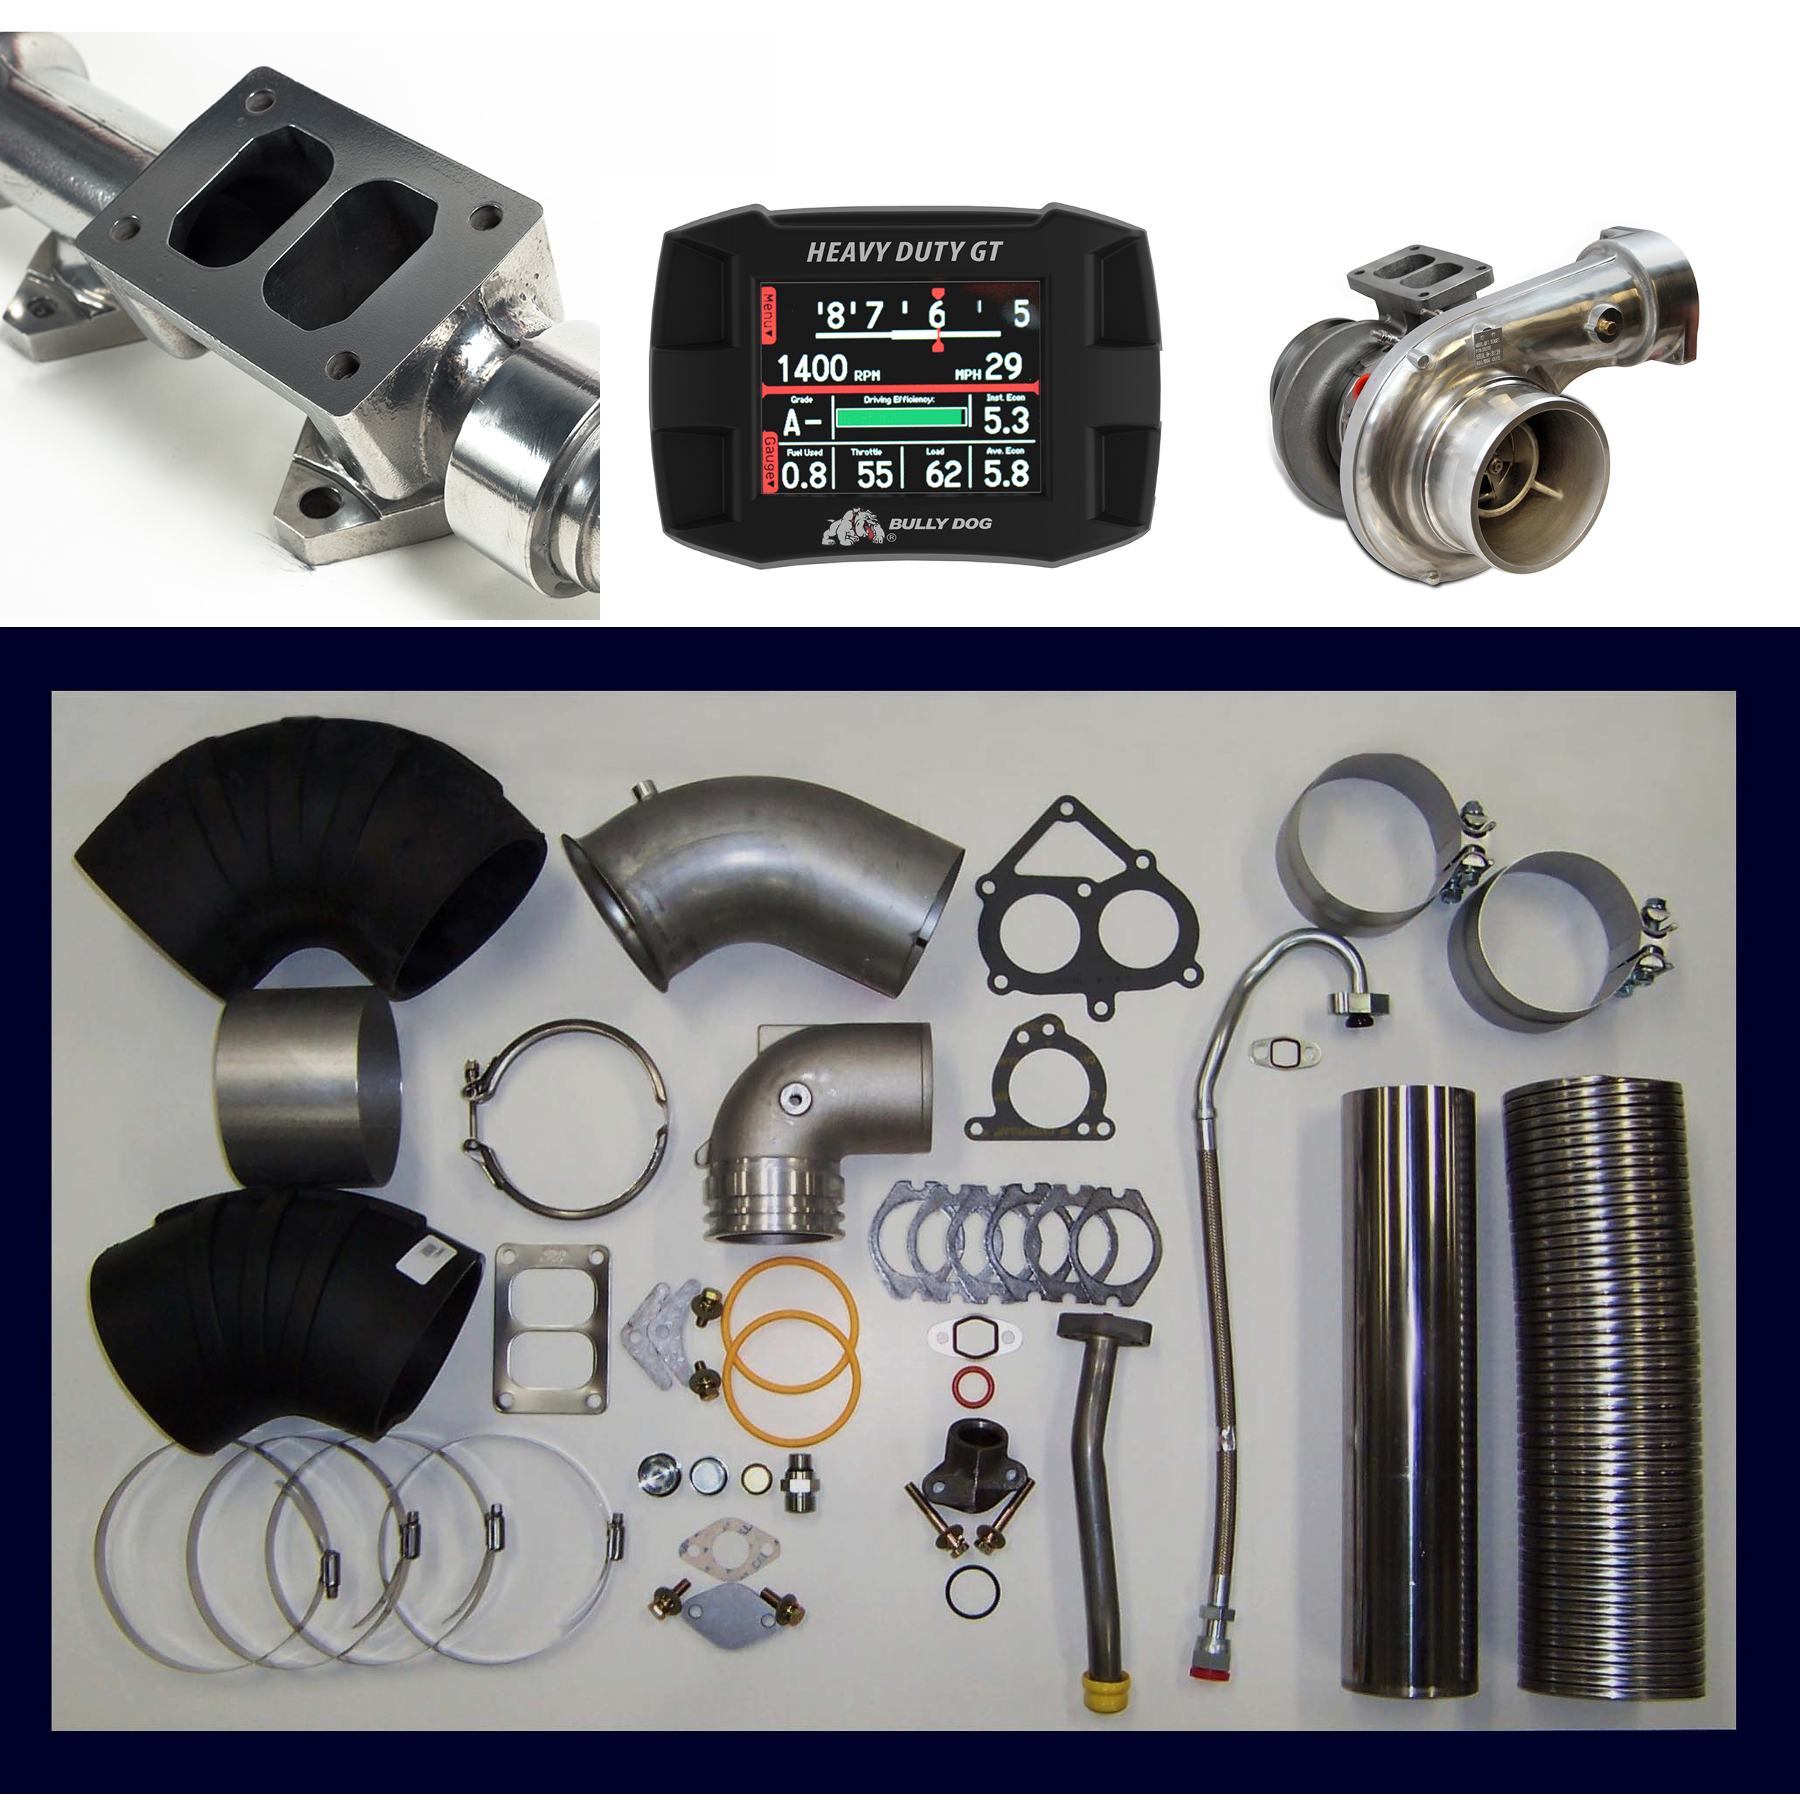 C15 Single Turbo Conversion Kit as well Watch further 7ojqt 08 F650 Medium Duty 5 9l Cummins Cranks Wont Start The besides Index further 8q6ro Drive 1995 Ch613 Mack Truck Want Check Fuse. on freightliner engine wiring diagram